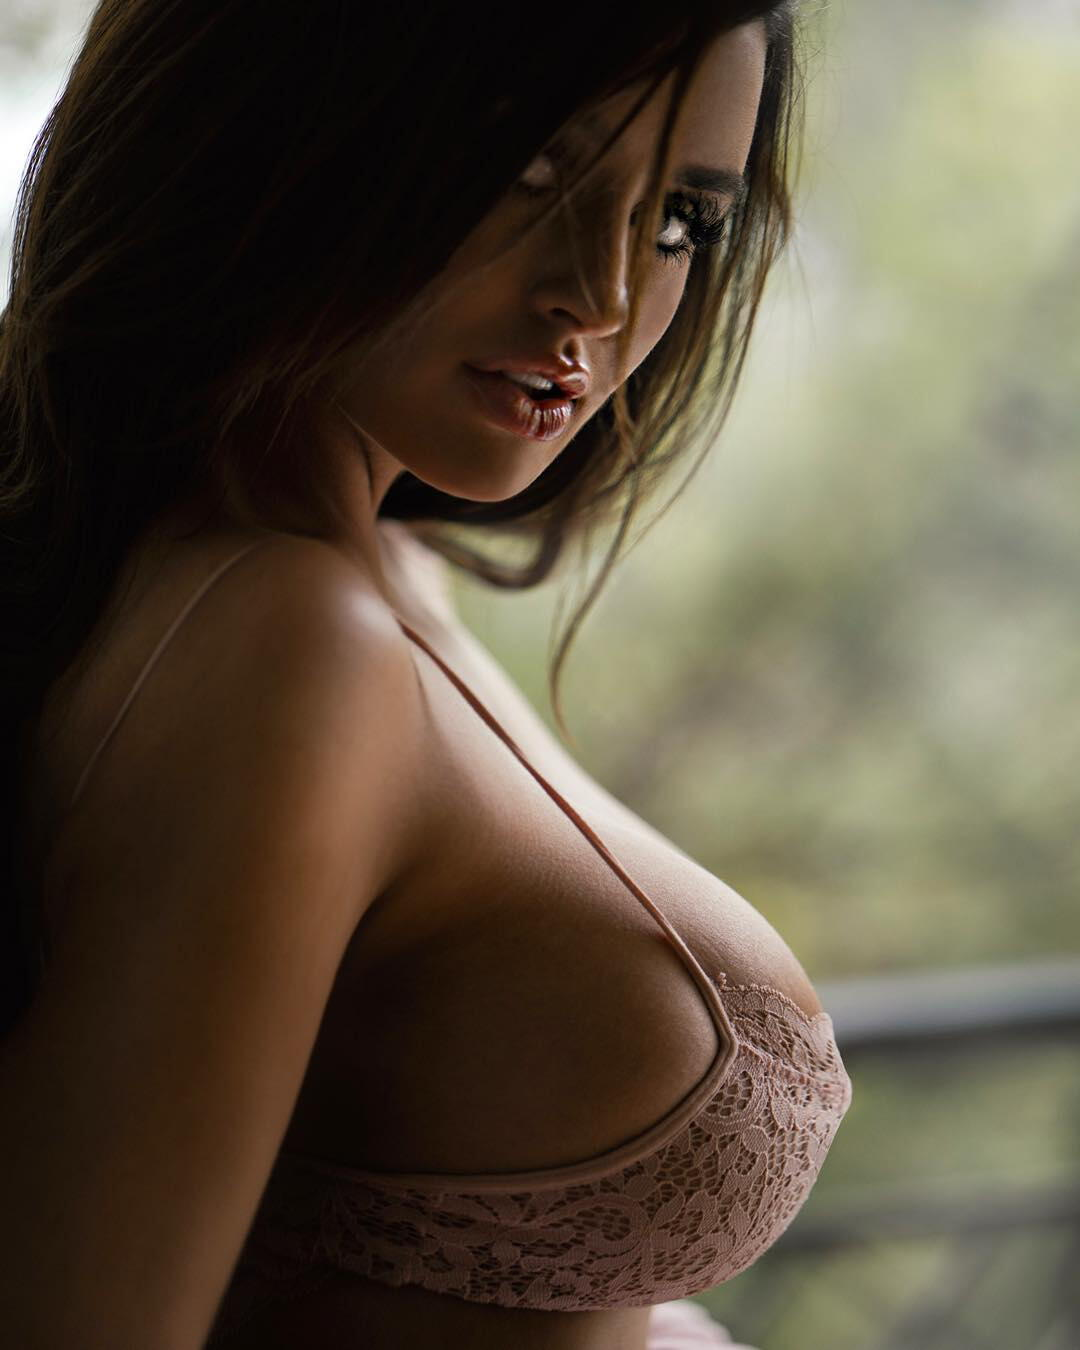 Best Of Busty Bombshell Abigail Ratchford 2017 - 11